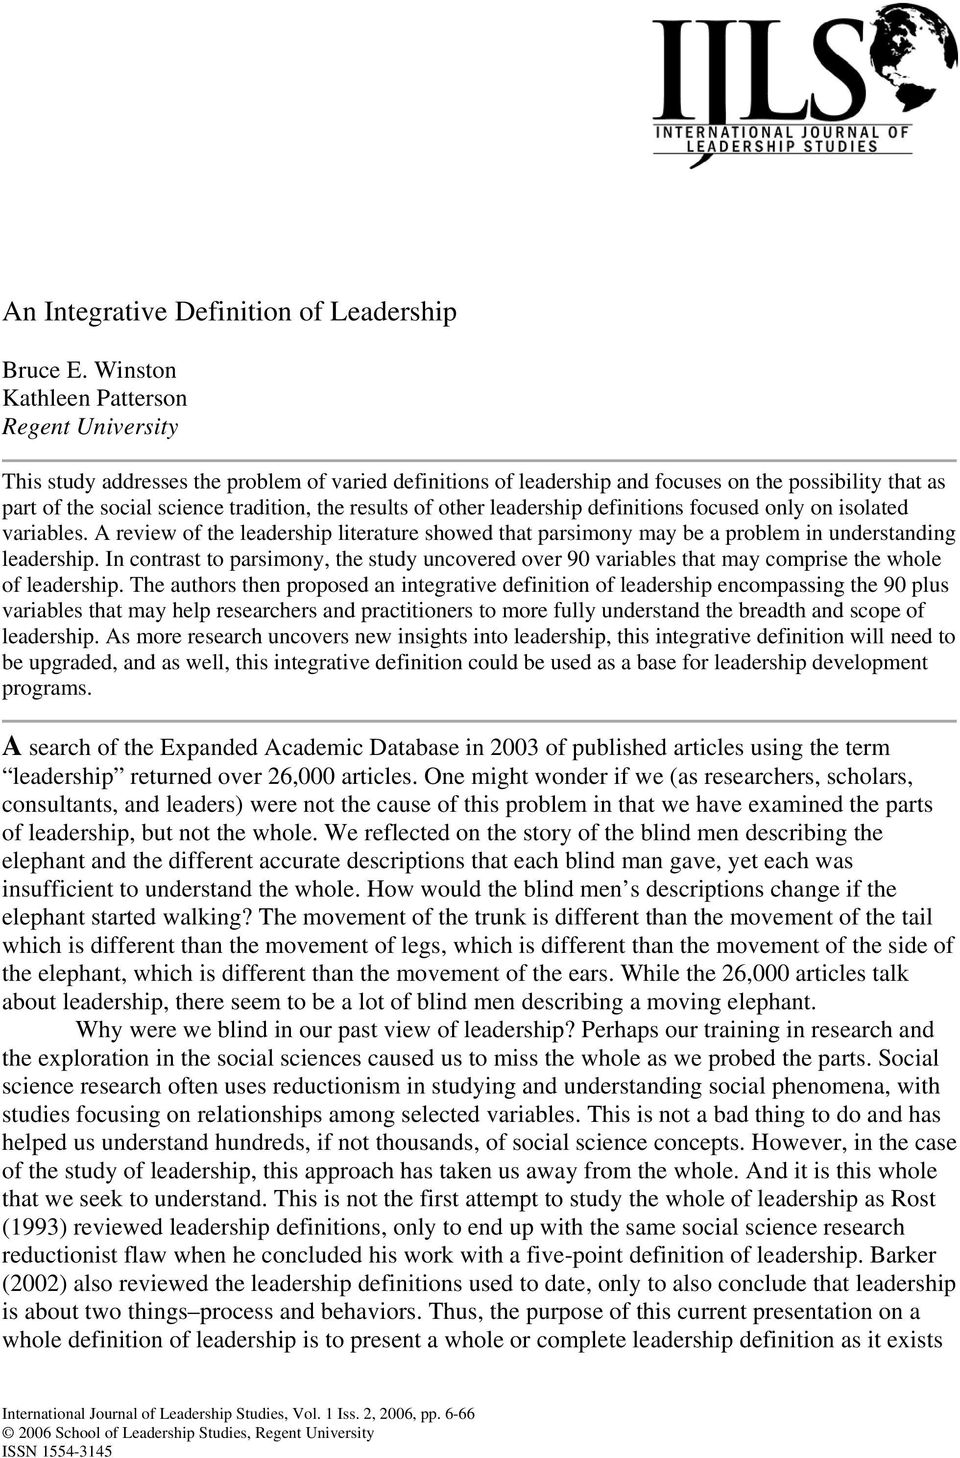 integrative definition of leadership review 422 avolio, walumbwa, & weber in annual review of psychology 60 (2009) introduction one of our goals for this integrative re-view is to examine the ways in which the field of leadership is evolving and the conse.